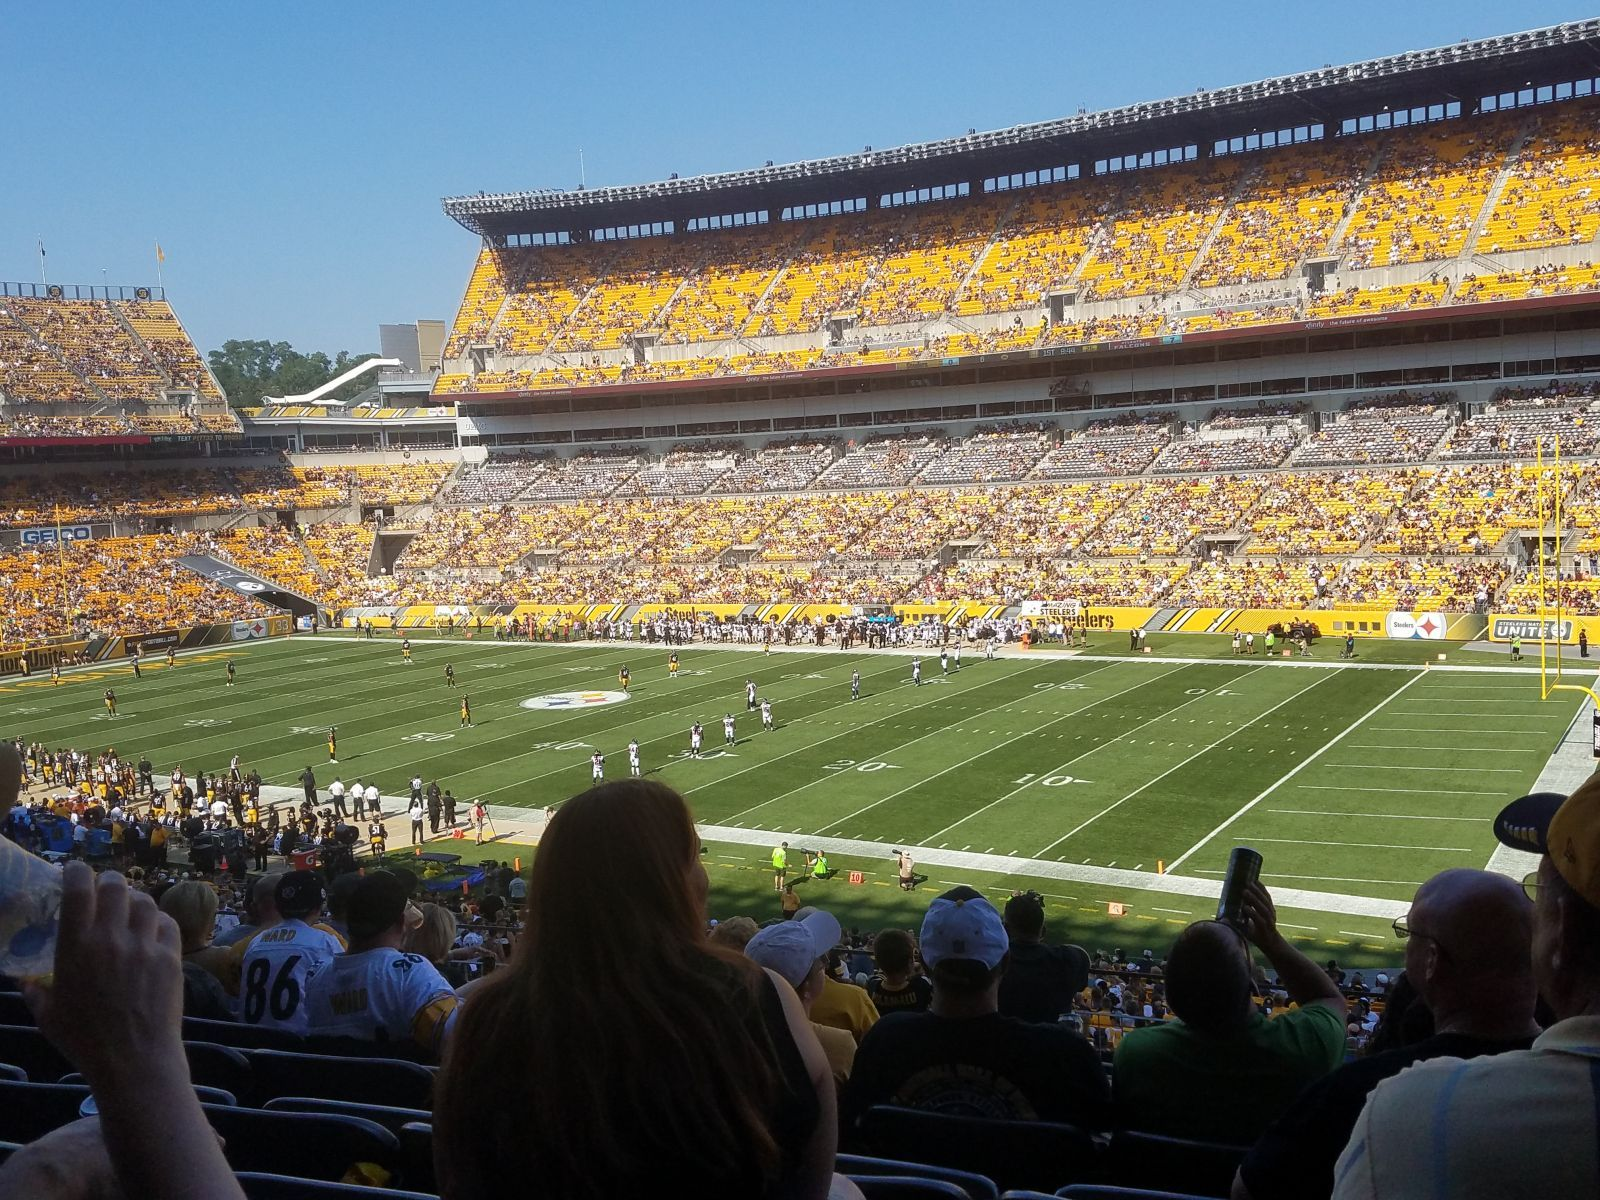 Section 239 seat view